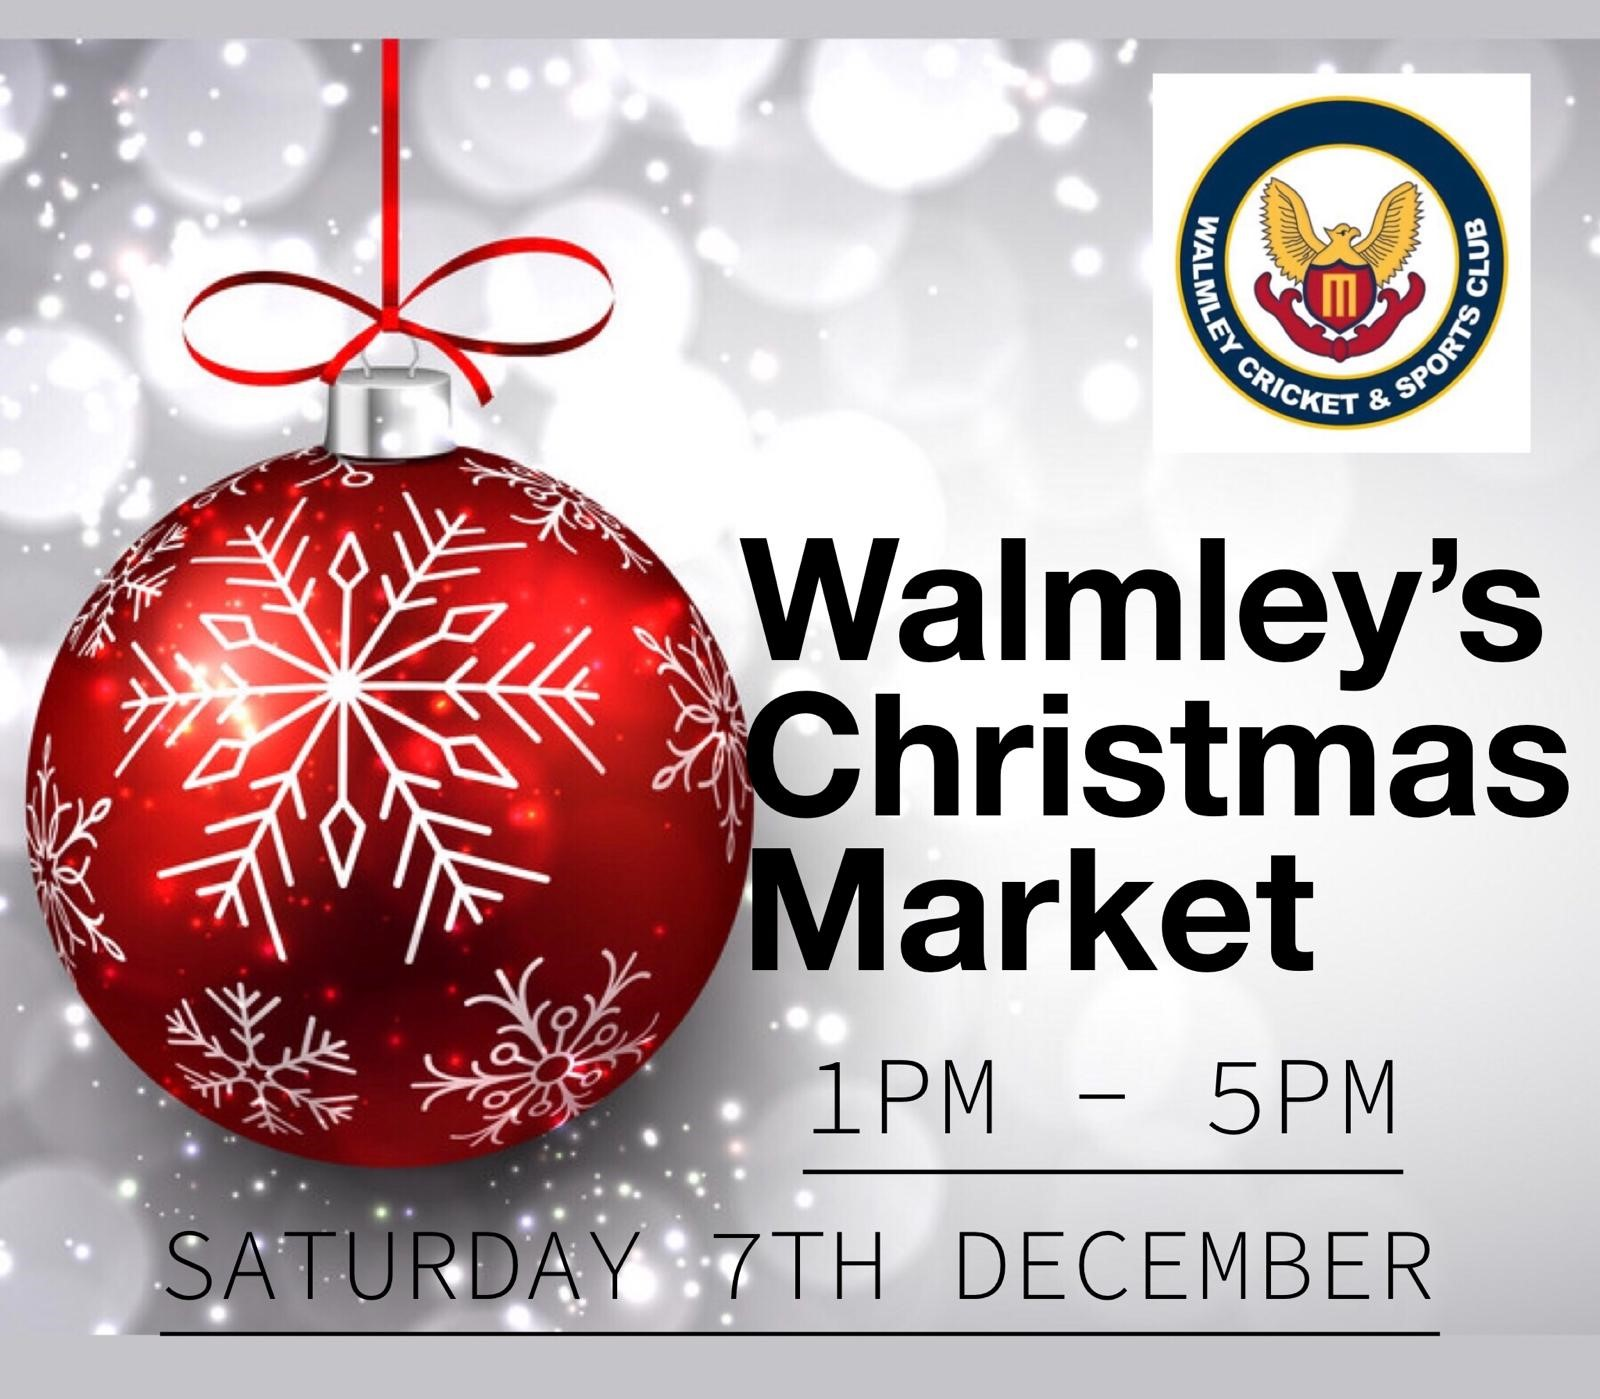 Just a few days left until Walmley's Christmas Market!